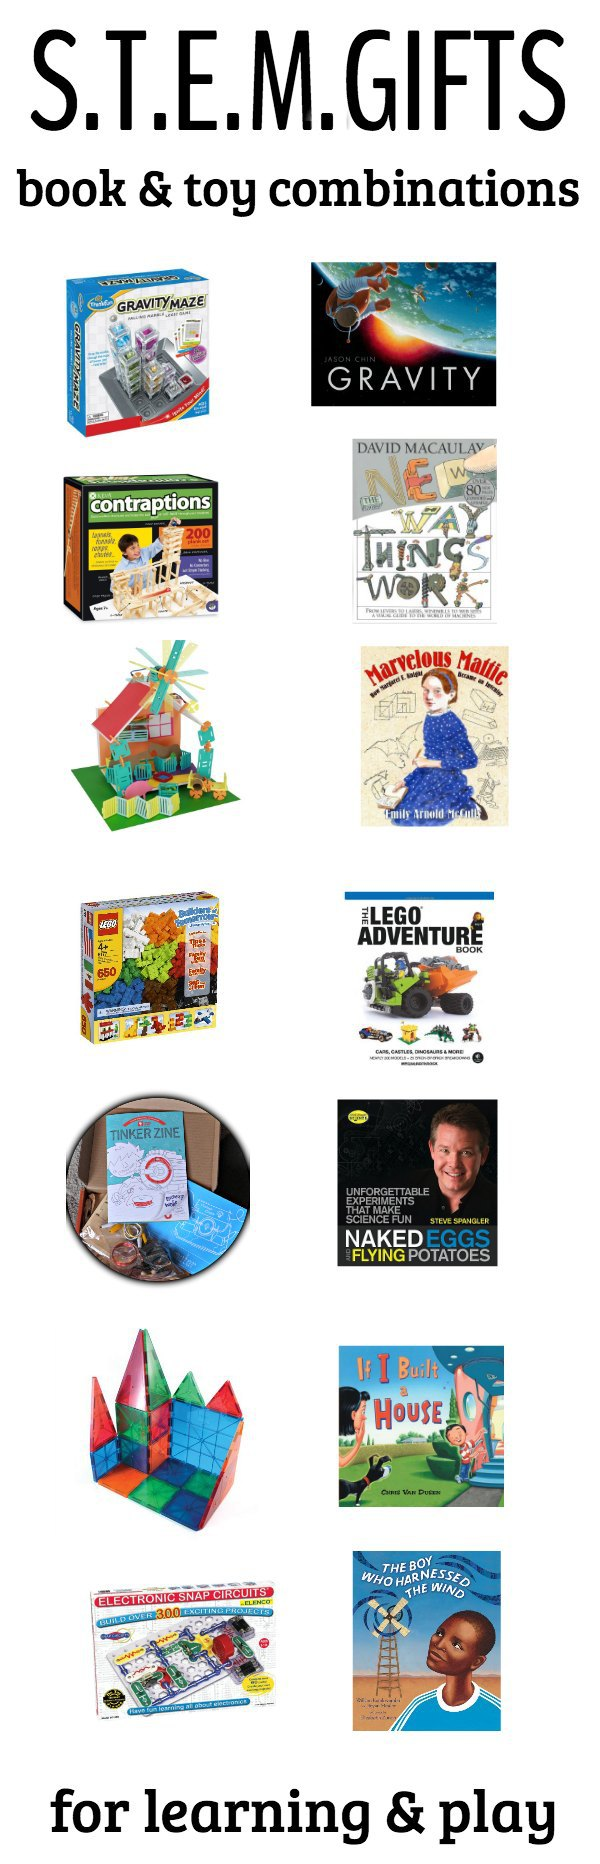 Great STEM toys and STEM children's books that make the perfect combo. These STEM gifts for kids will promote imagination and inspire math, science, engineering and technology learning through play!  #STEM #STEAM